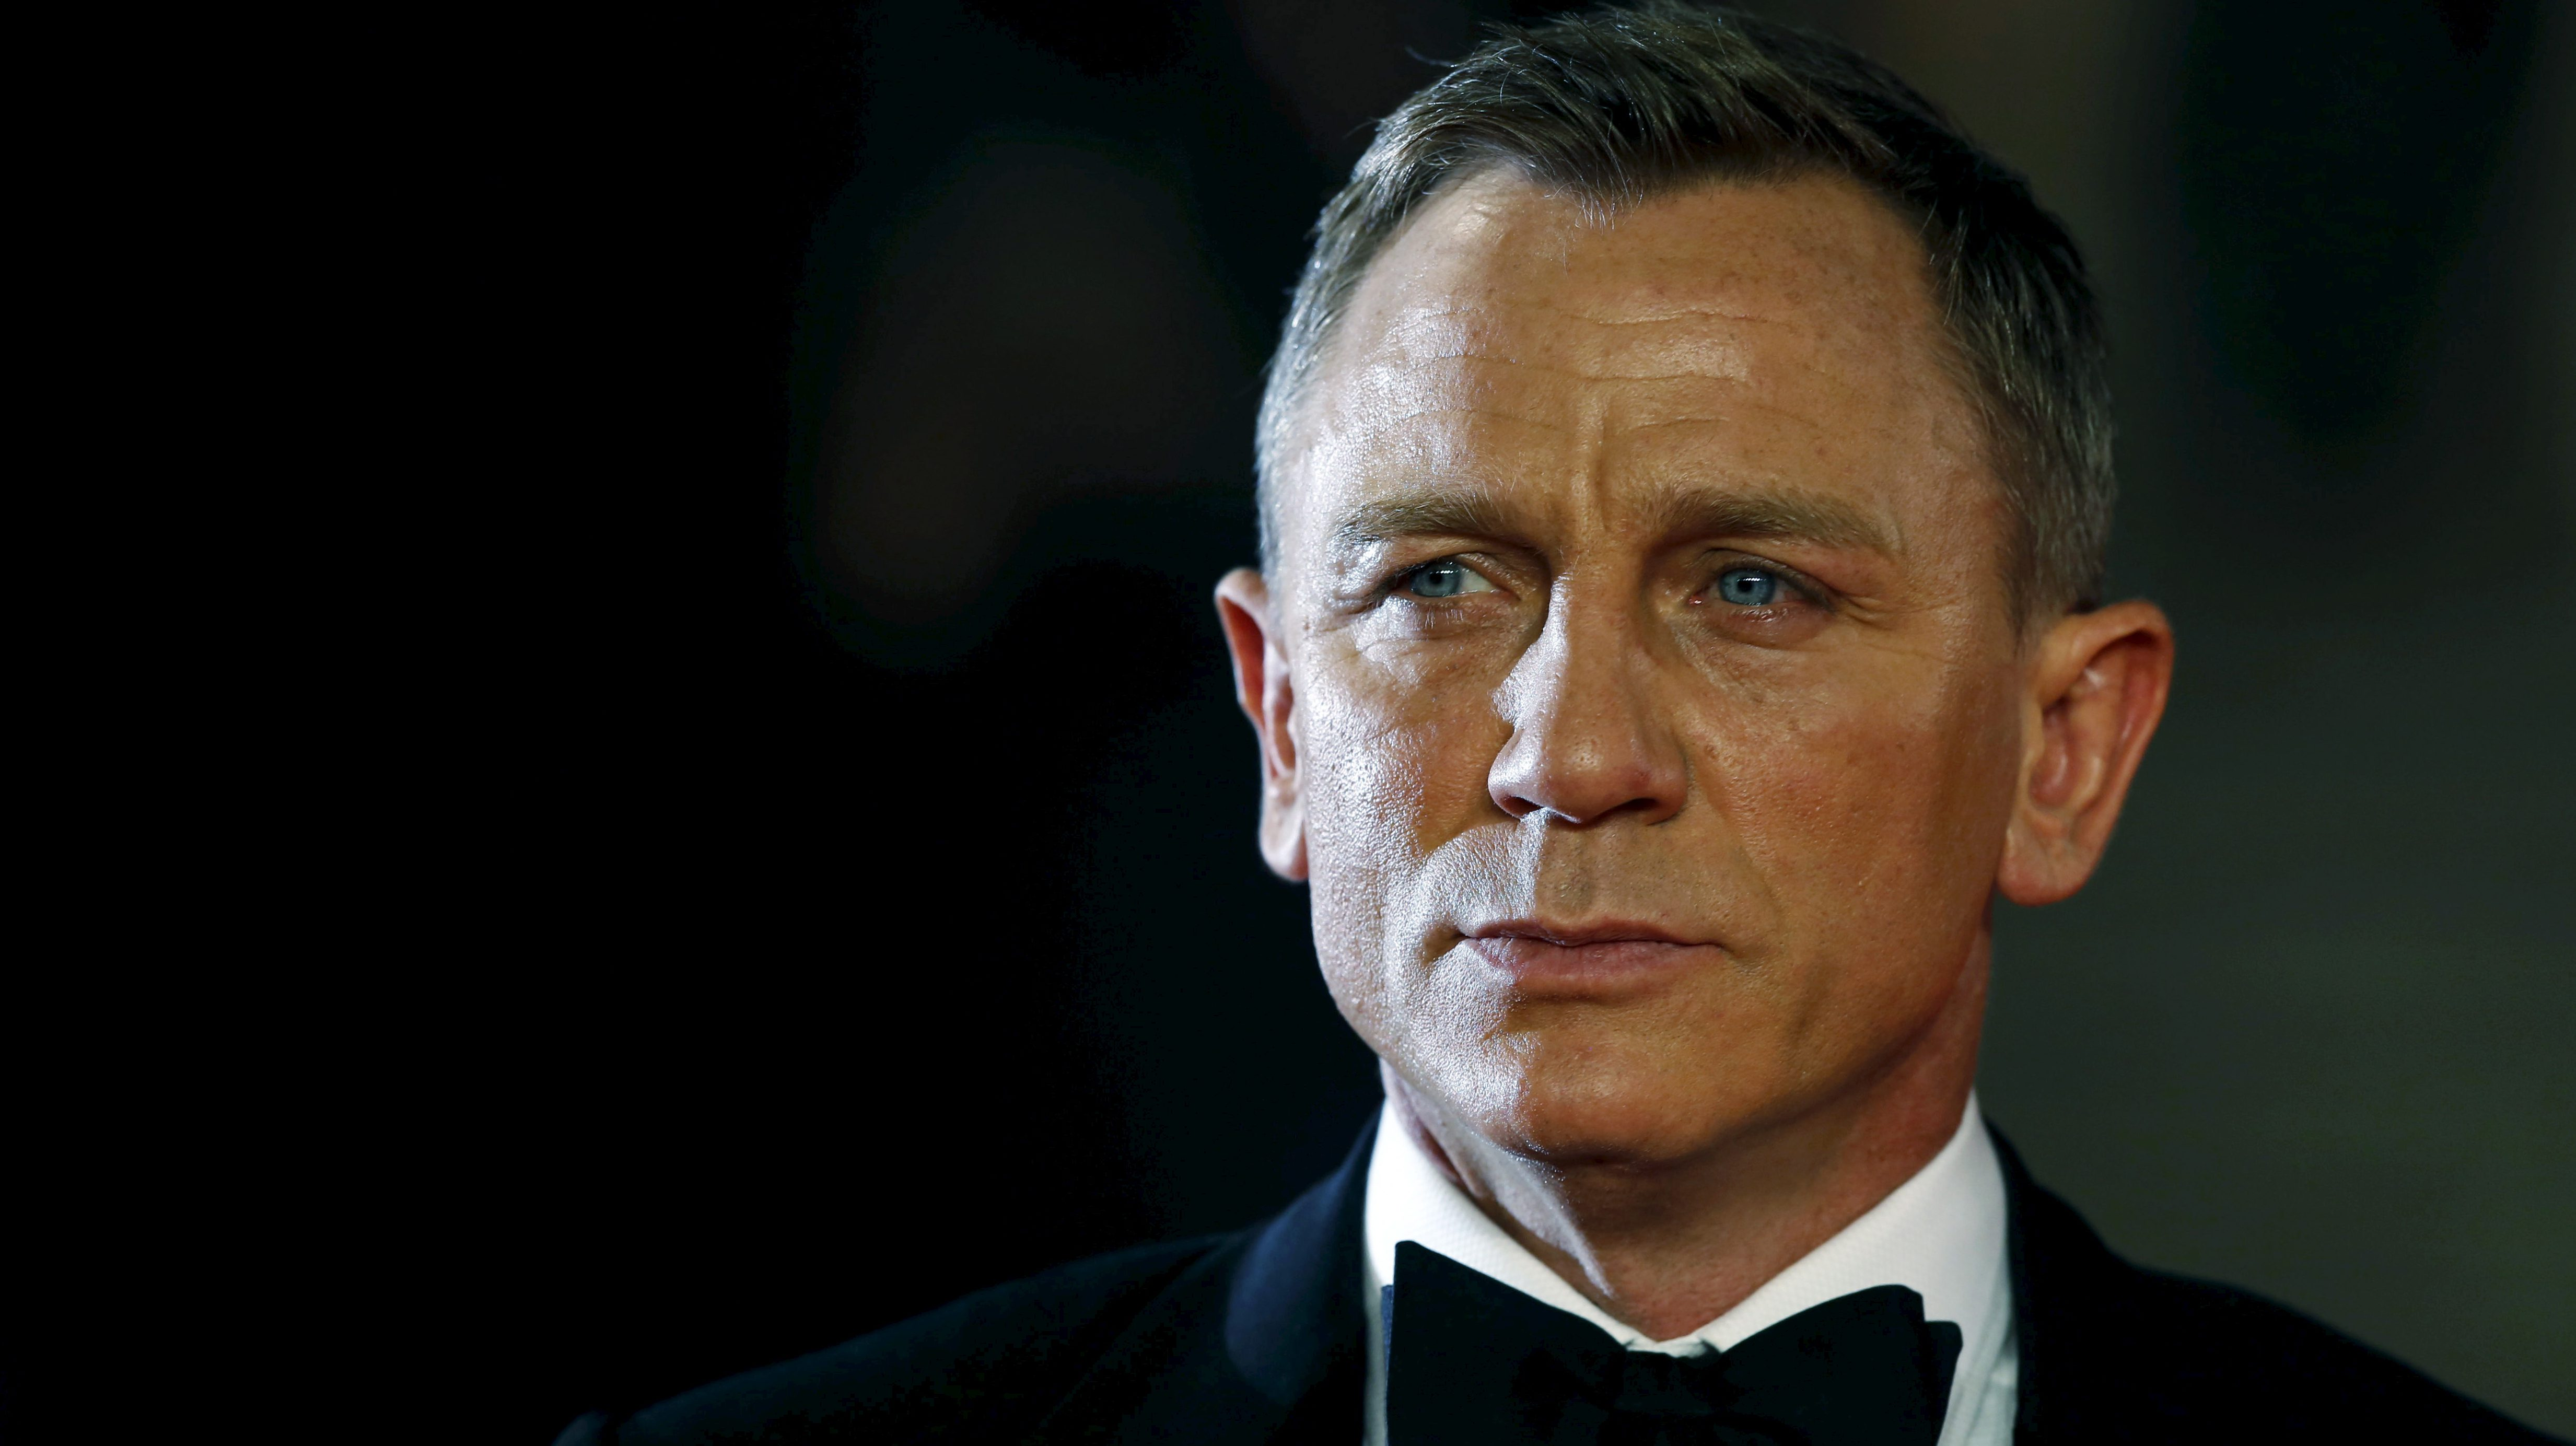 """Daniel Craig poses for photographers as he attends the world premiere of the new James Bond 007 film """"Spectre"""" at the Royal Albert Hall in London, Britain, October 26, 2015. REUTERS/Luke MacGregor/Files - RTX2QO8T"""